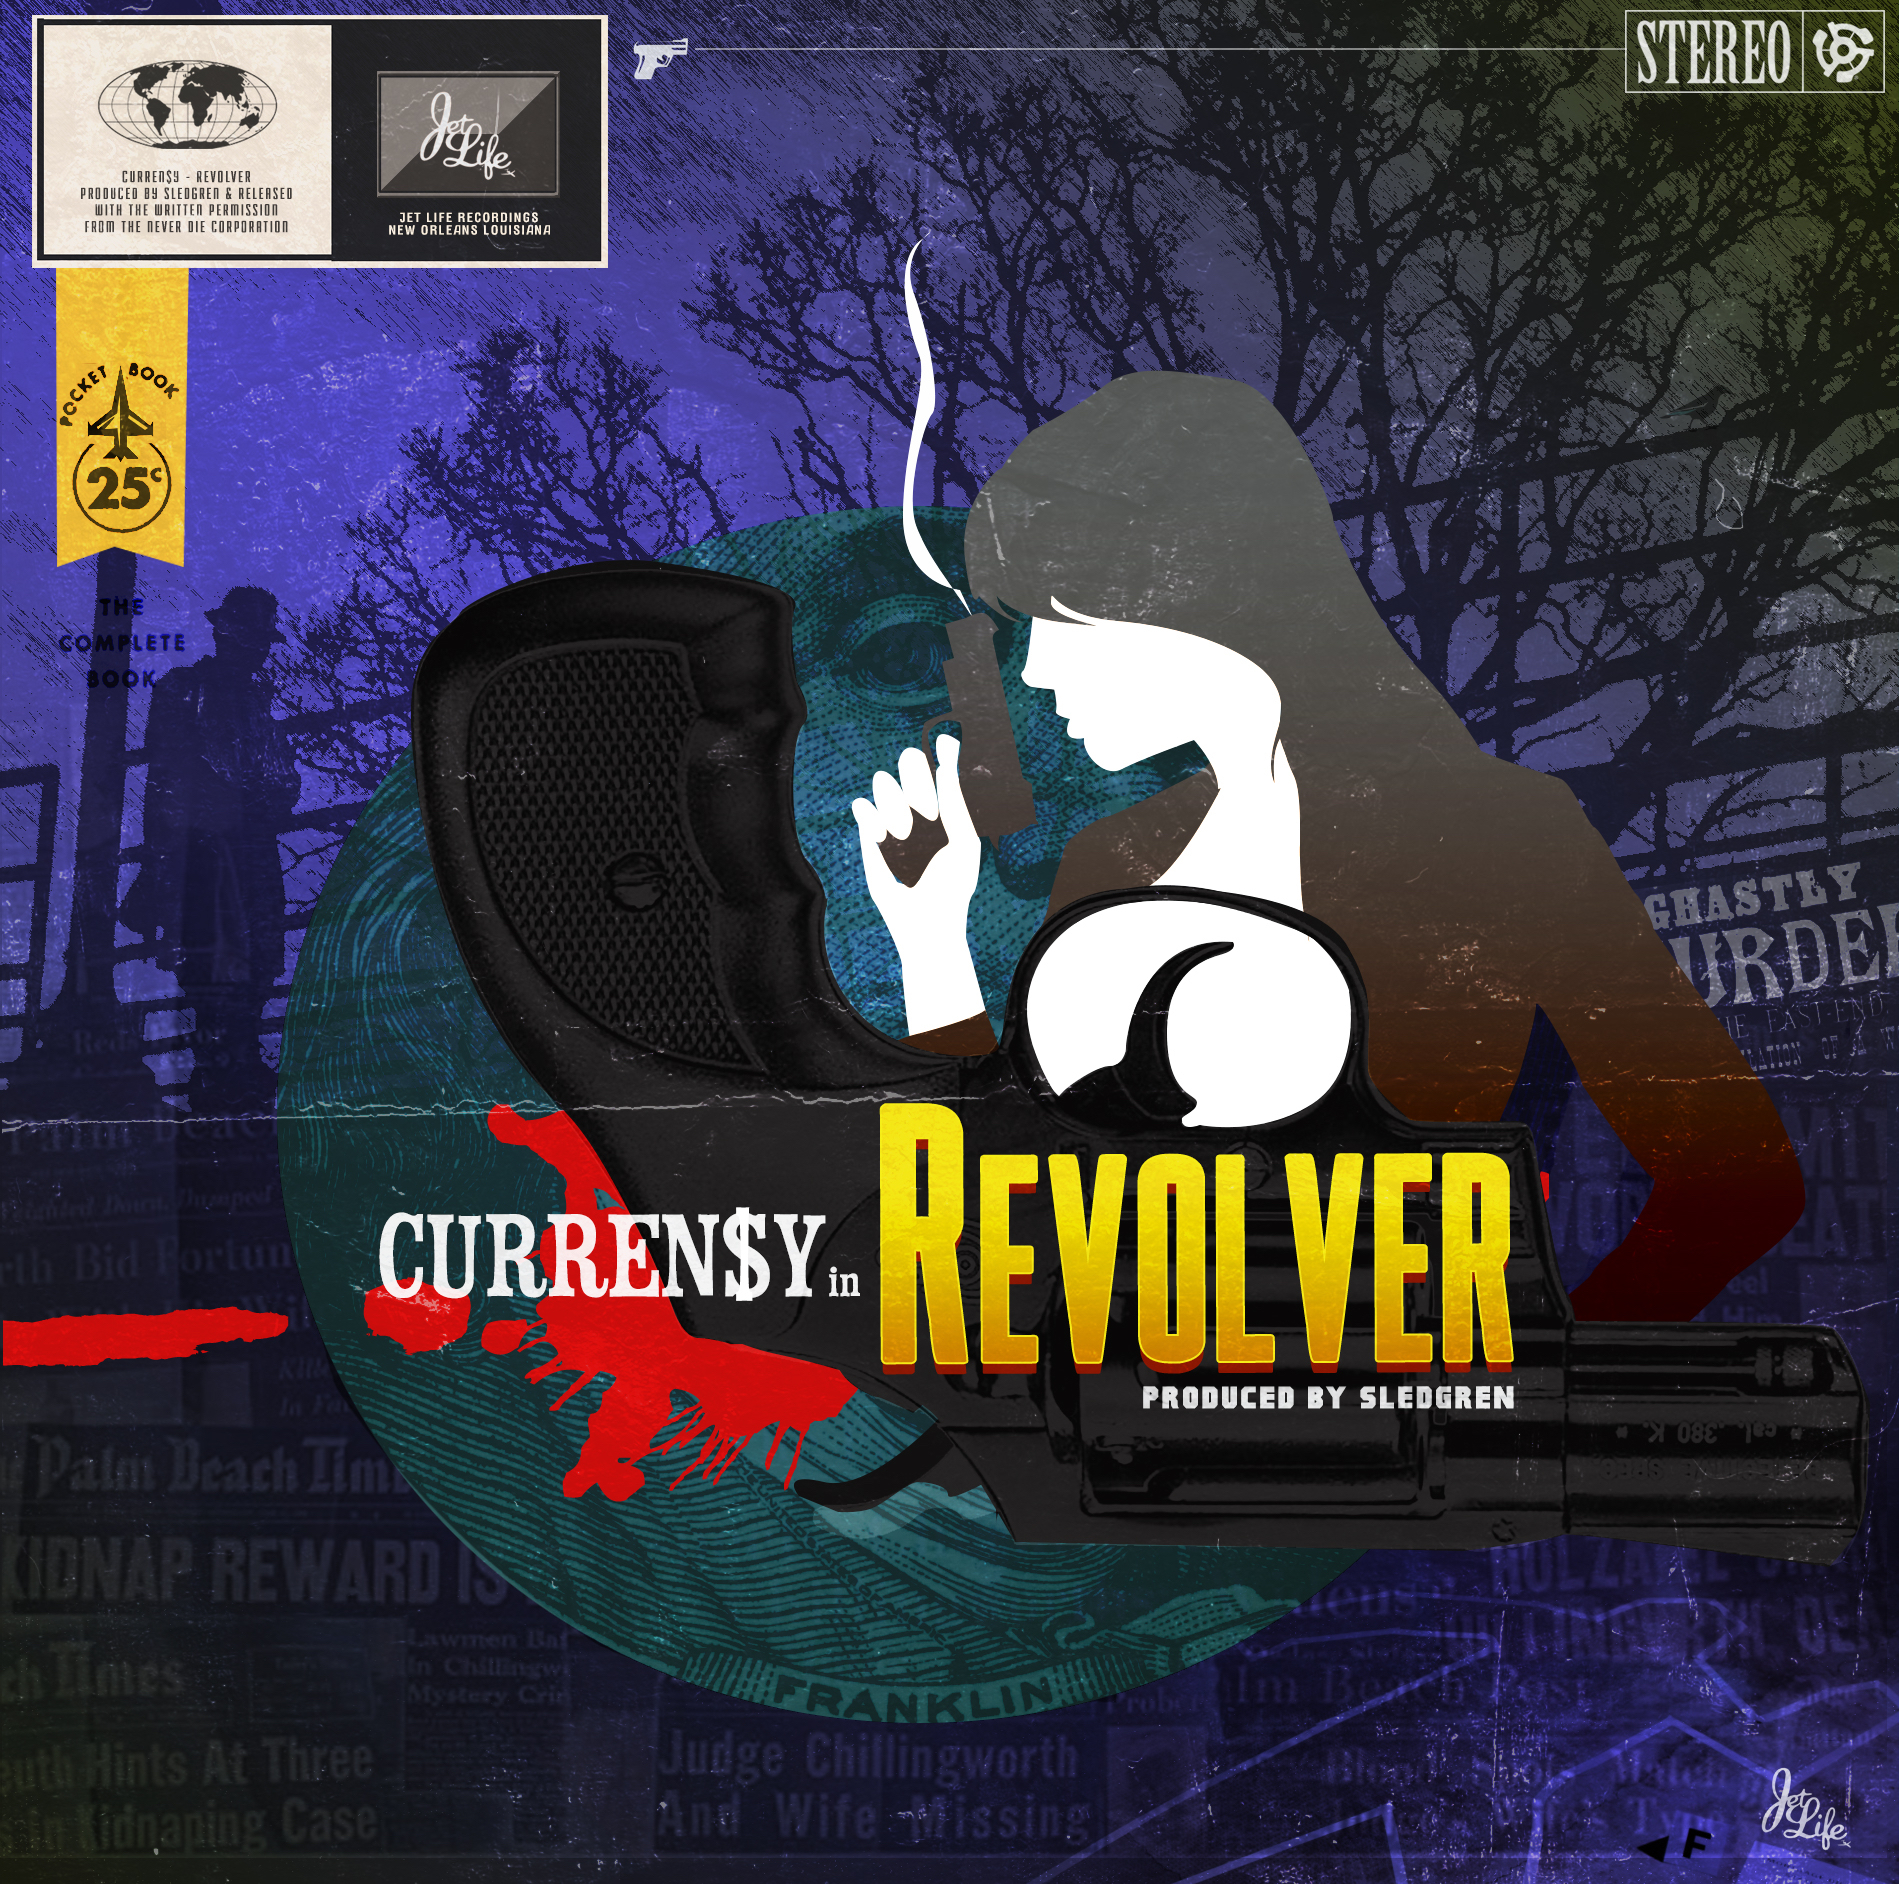 Curren$y & Sledgren - Revolver Cover Art